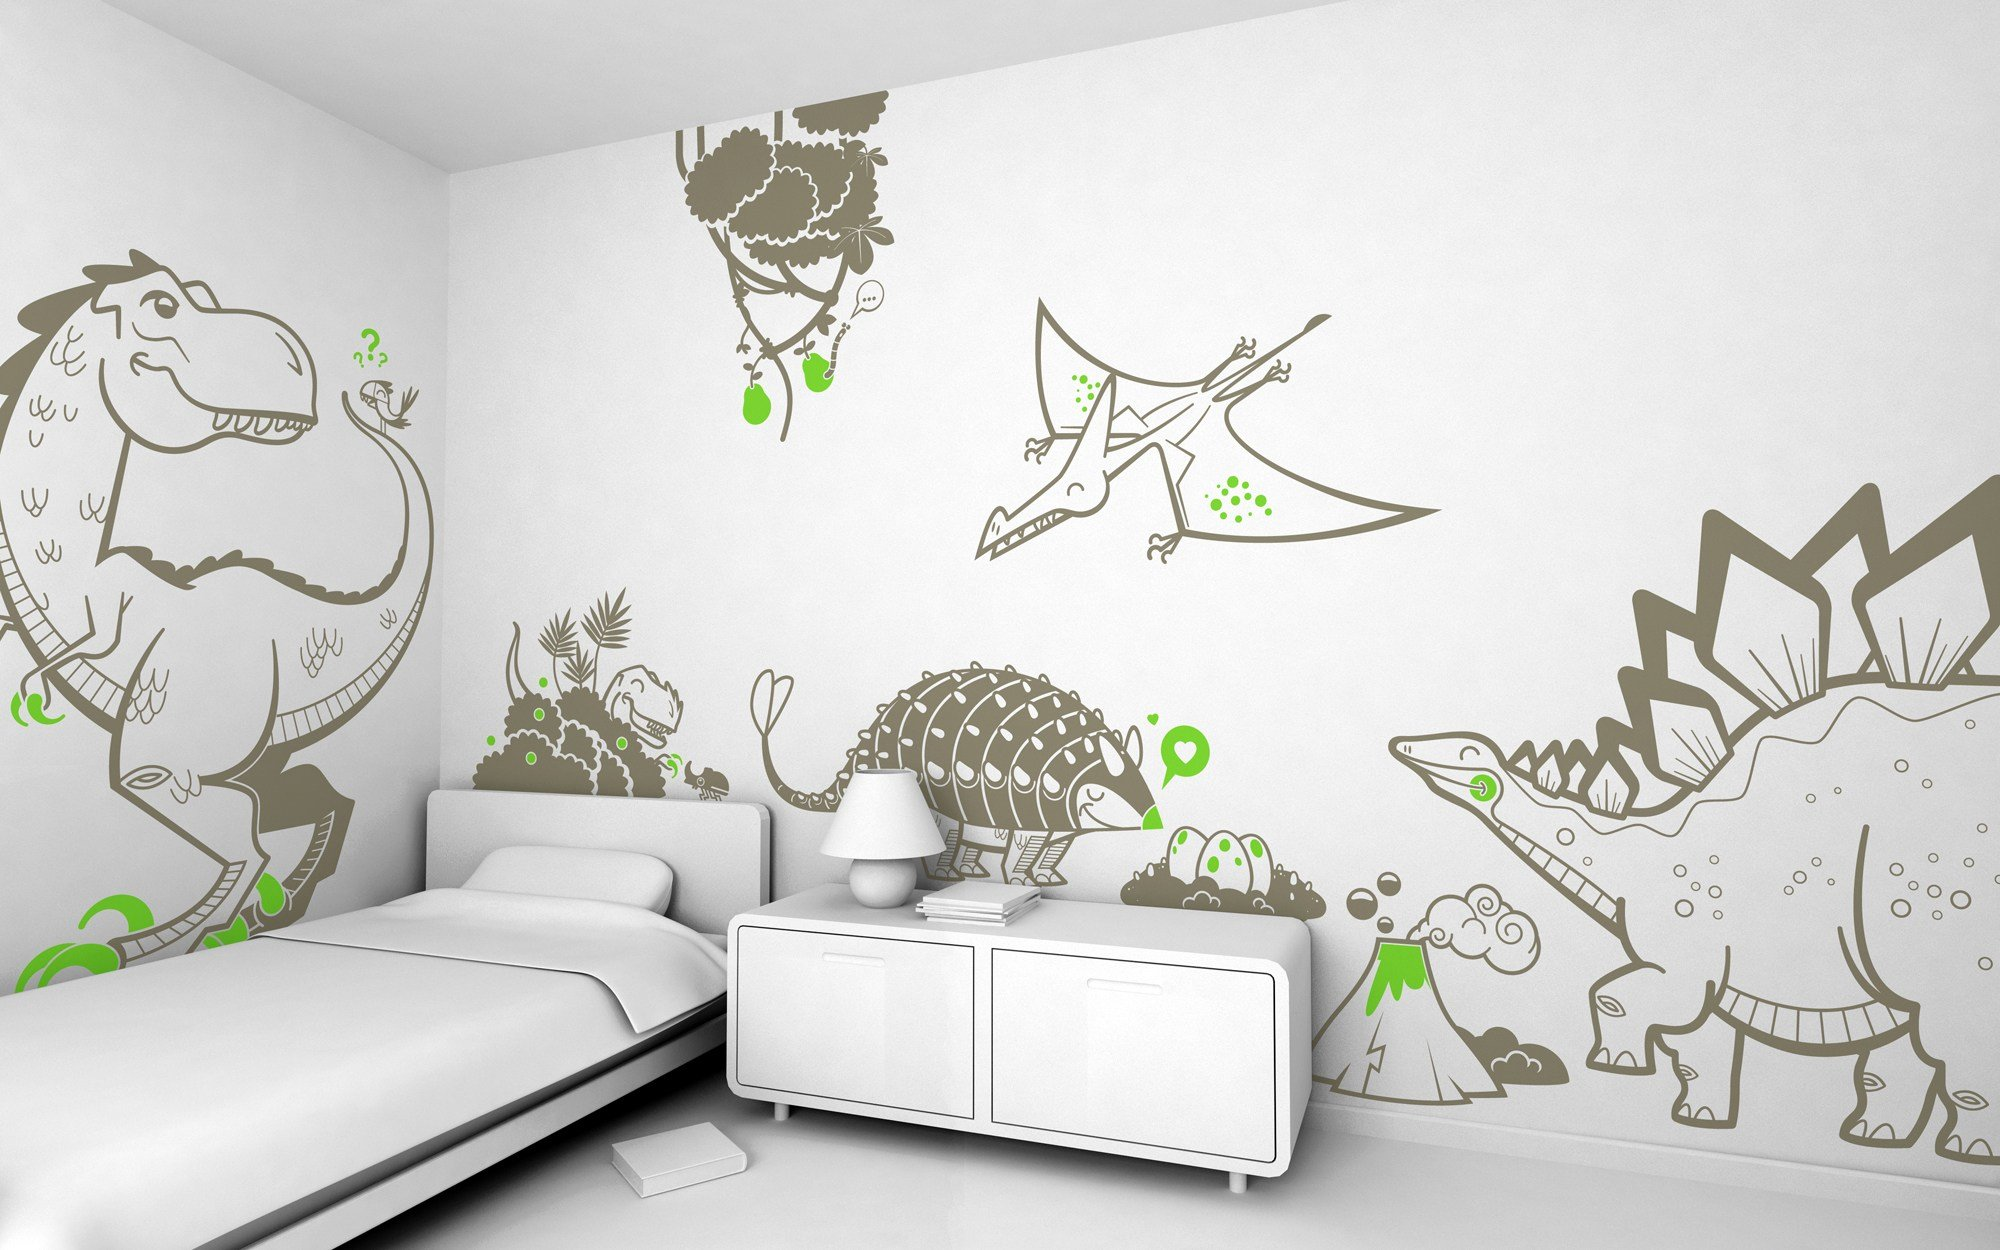 Best Giant Kids Wall Decals By E Glue Studio At Coroflot Com With Pictures